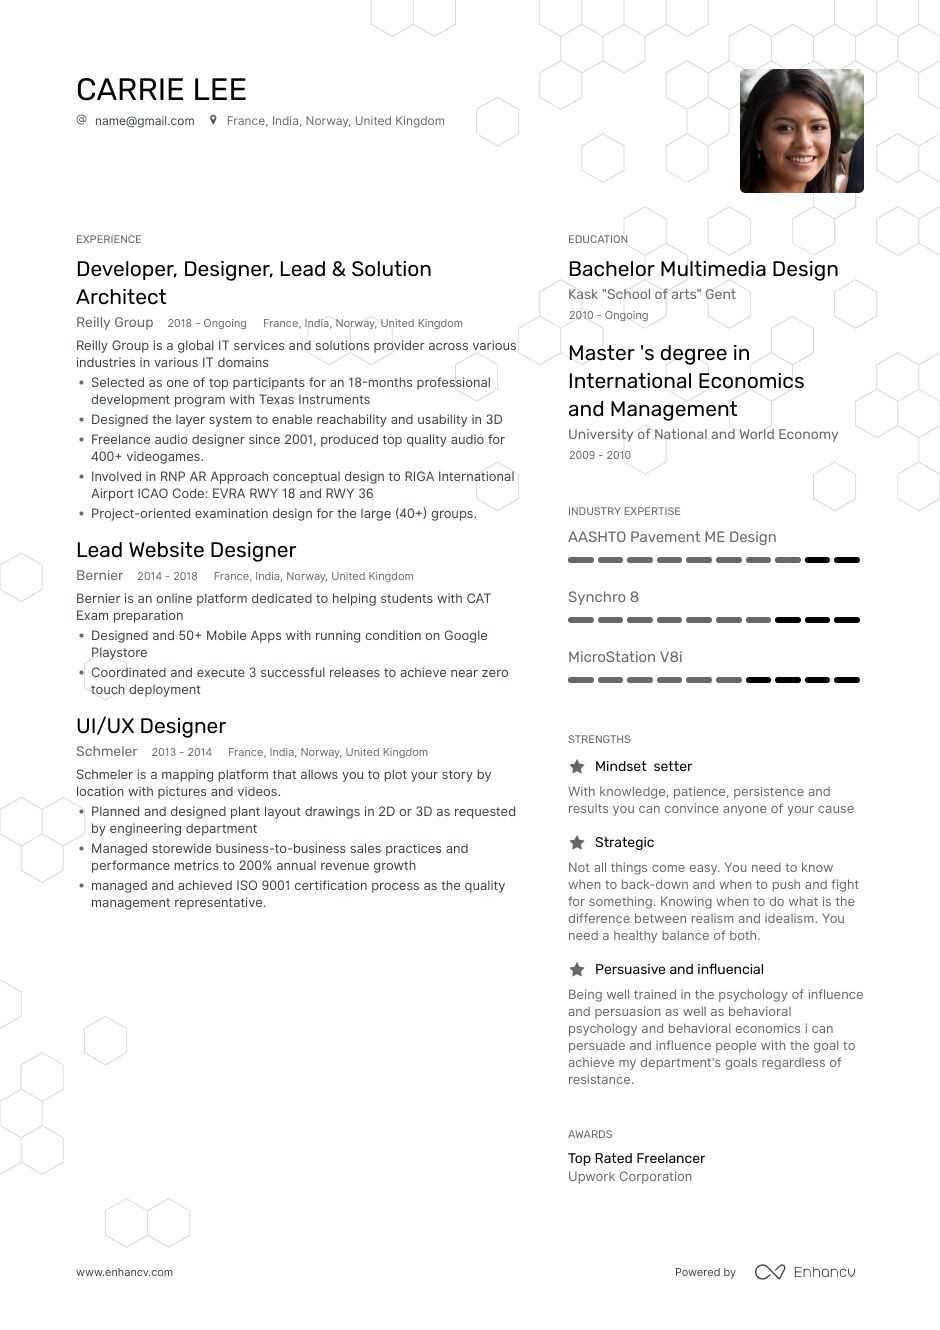 Top Graphic Designer Resume Examples Samples For 2020 Enhancv Com